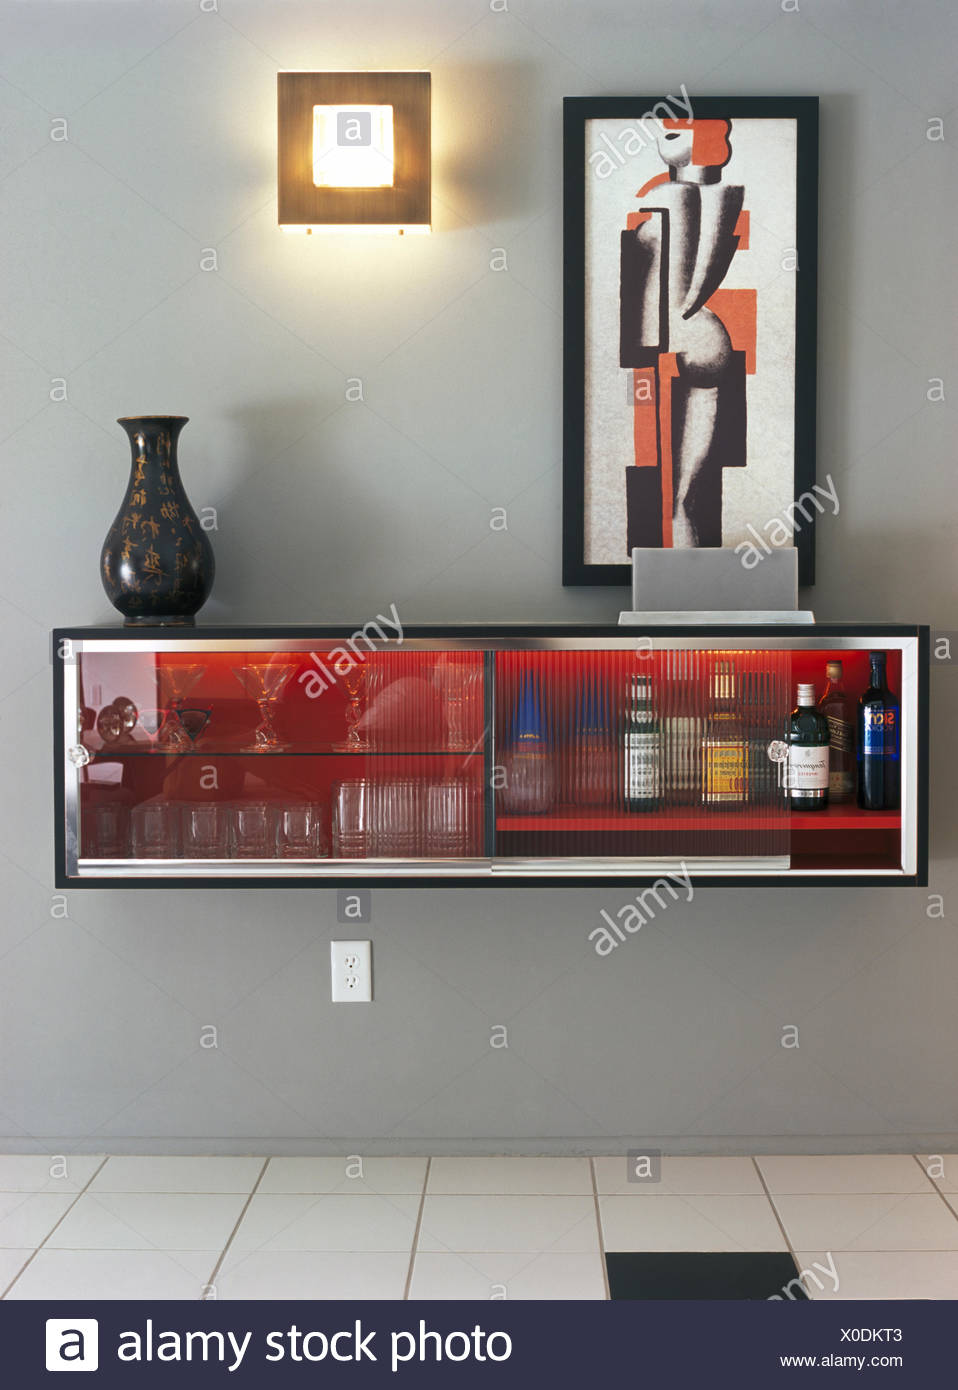 Drinks Cabinet Stock Photos Amp Drinks Cabinet Stock Images